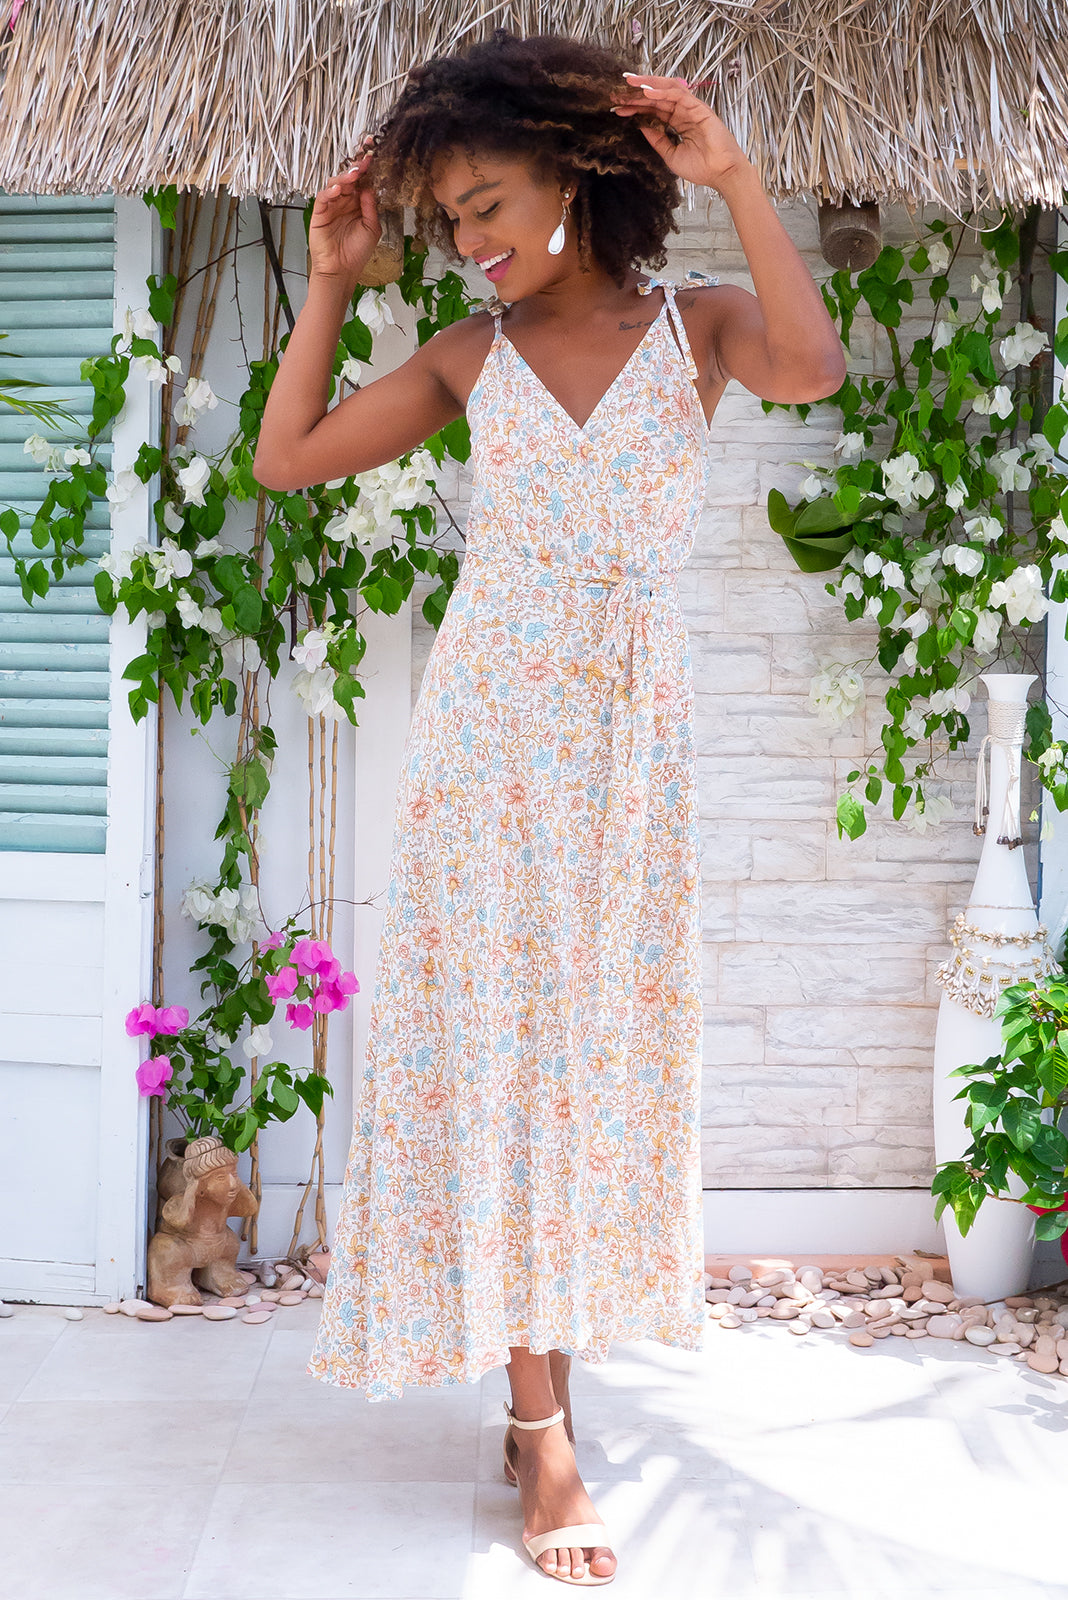 Byron Milk & Honey Maxi Wrap Dress, bohemian summer style, 100% rayon, wrap style dress, can be worn multiple ways, tie attached at waist, adjustable shoulder ties, dress hem slightly longer at back, white base with soft peach, blue and gold floral print.